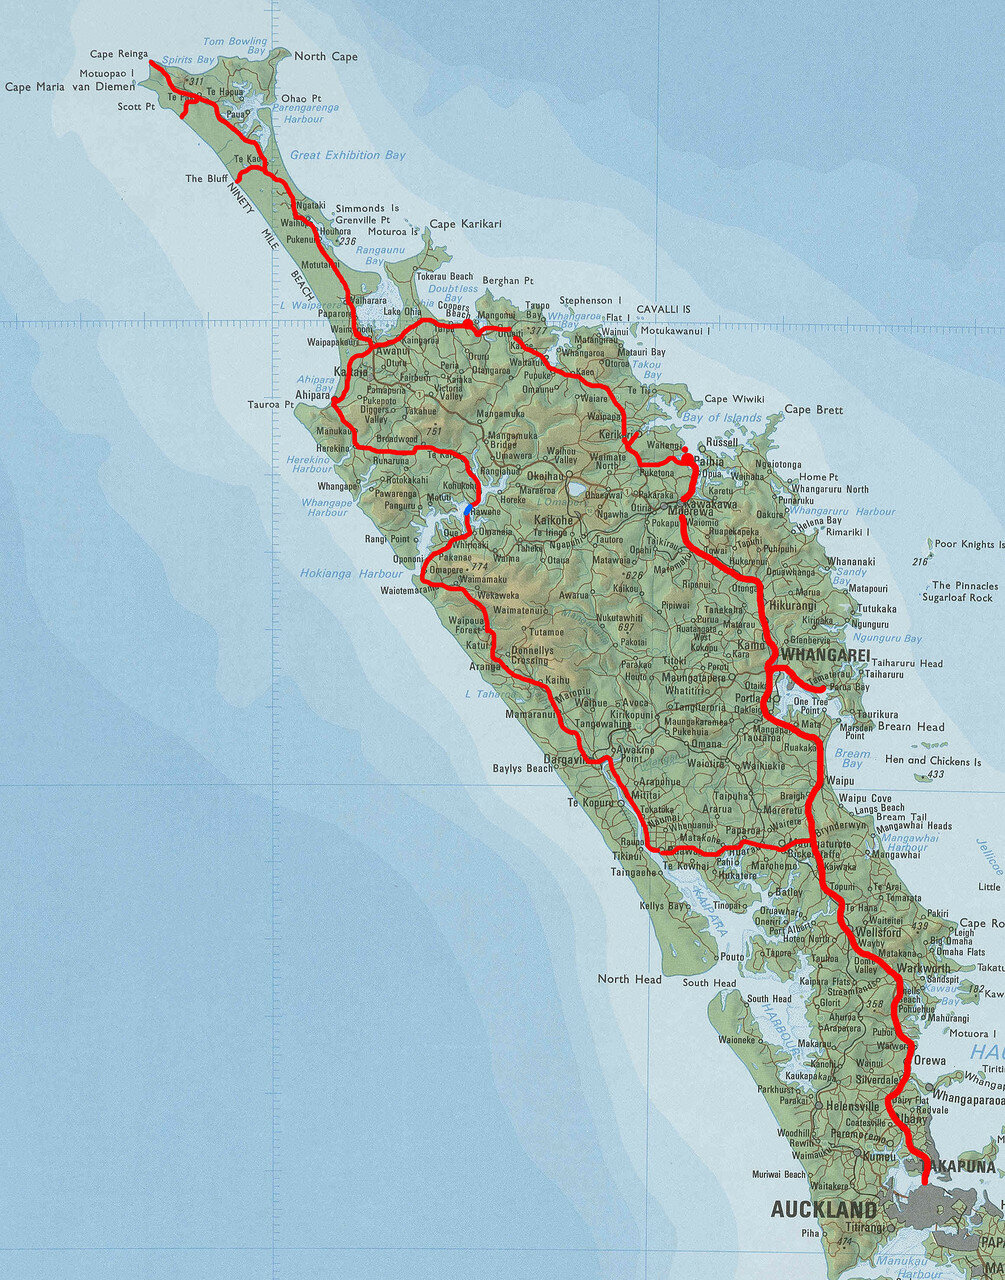 large_detailed_topographical_map_of_north_island_new_zealand_with_all_cities_and_roads_for_free.jpg